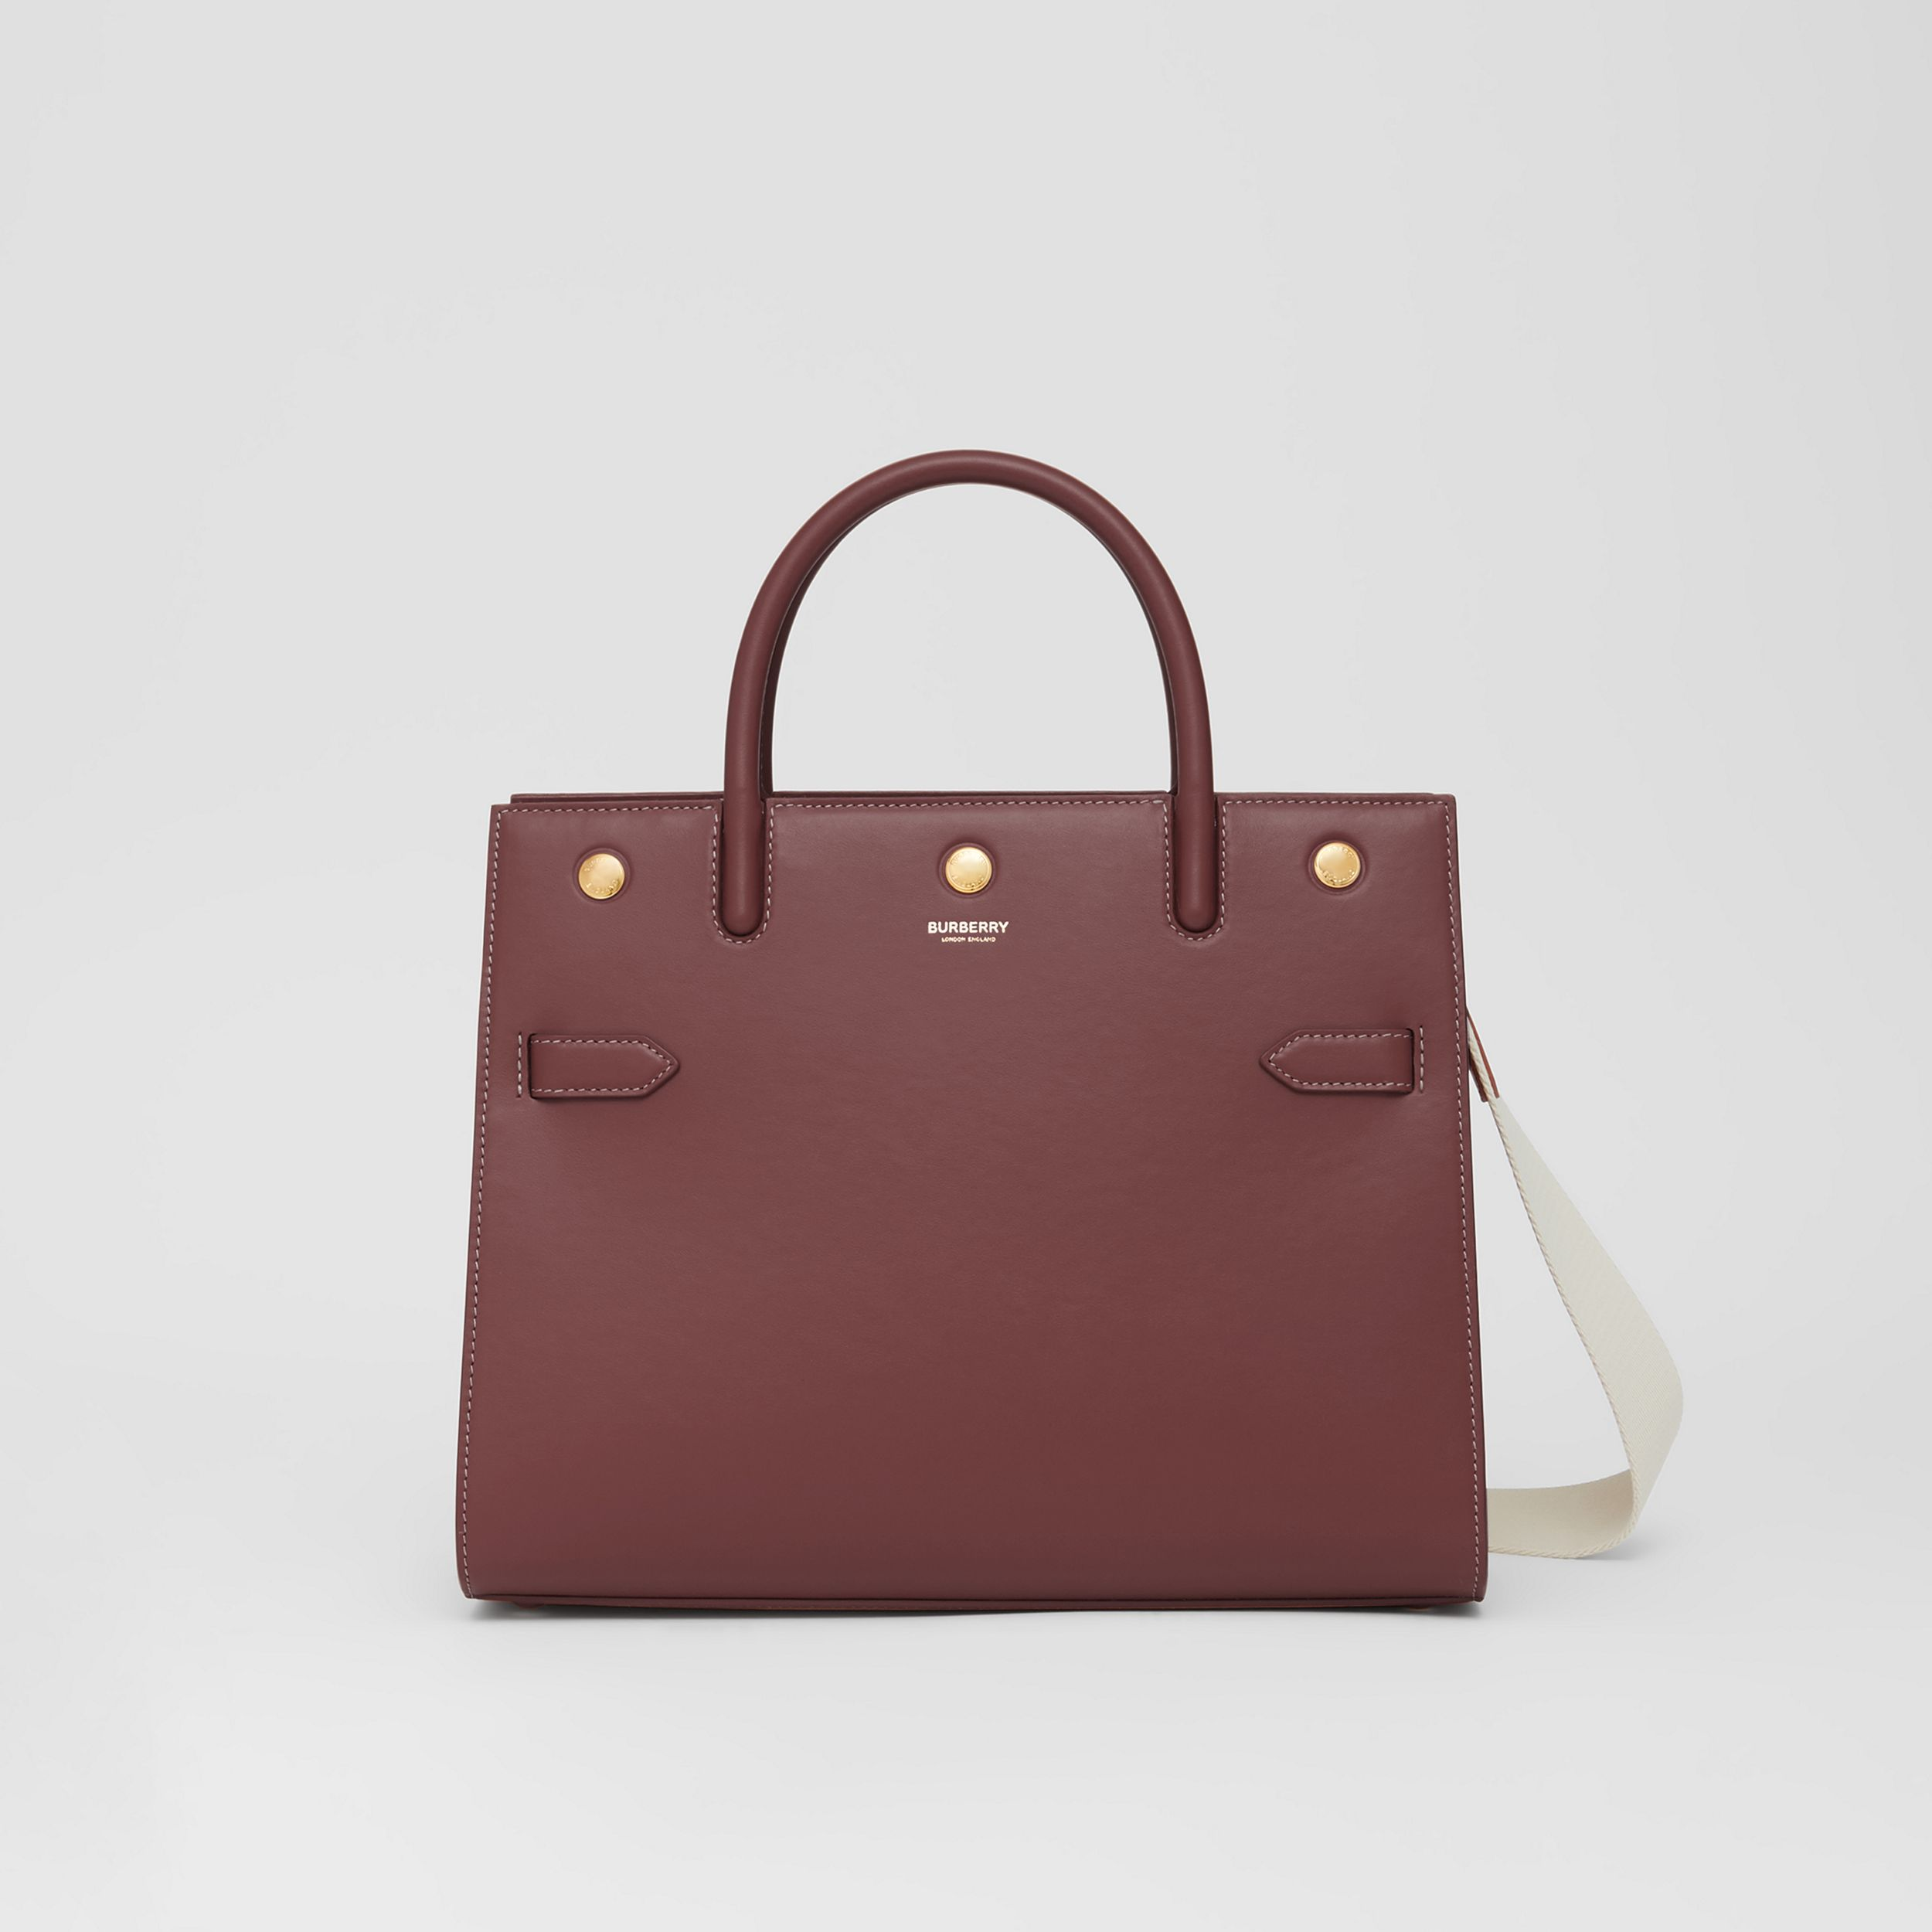 Medium Leather Two-handle Title Bag in Garnet - Women | Burberry Australia - 1